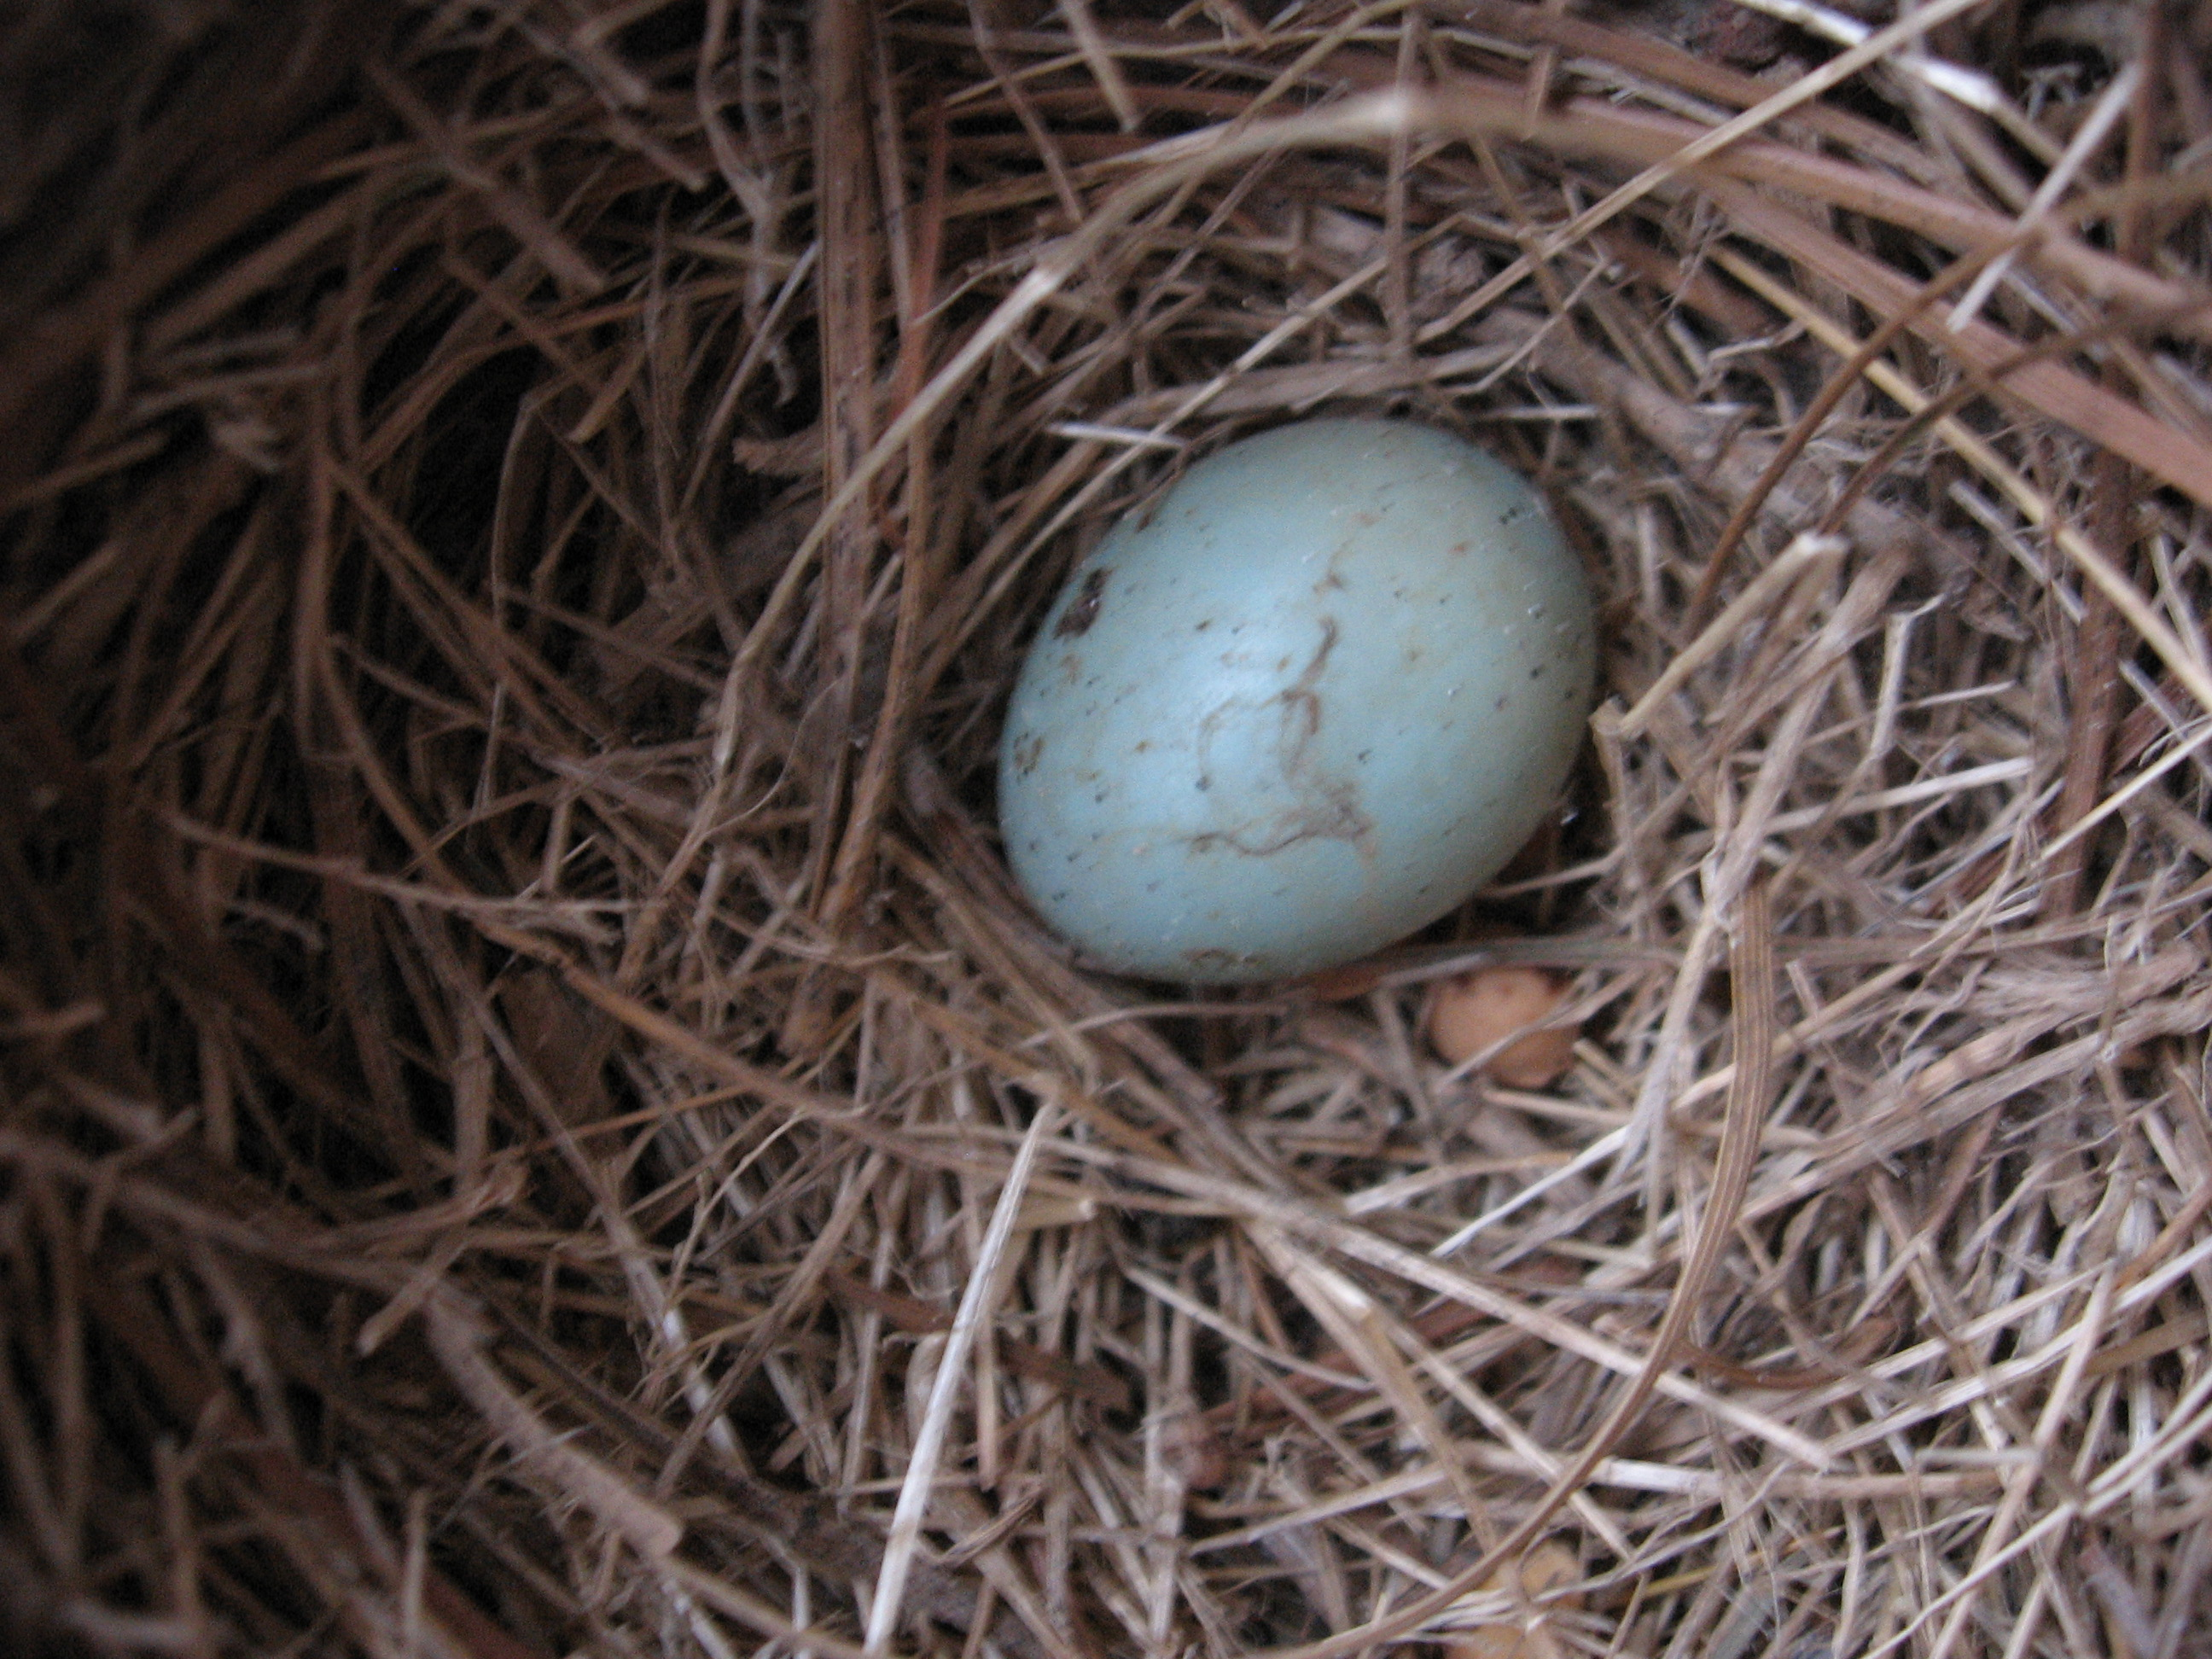 This egg didn\'t hatch. Notice the tiny pink blob beside the egg.